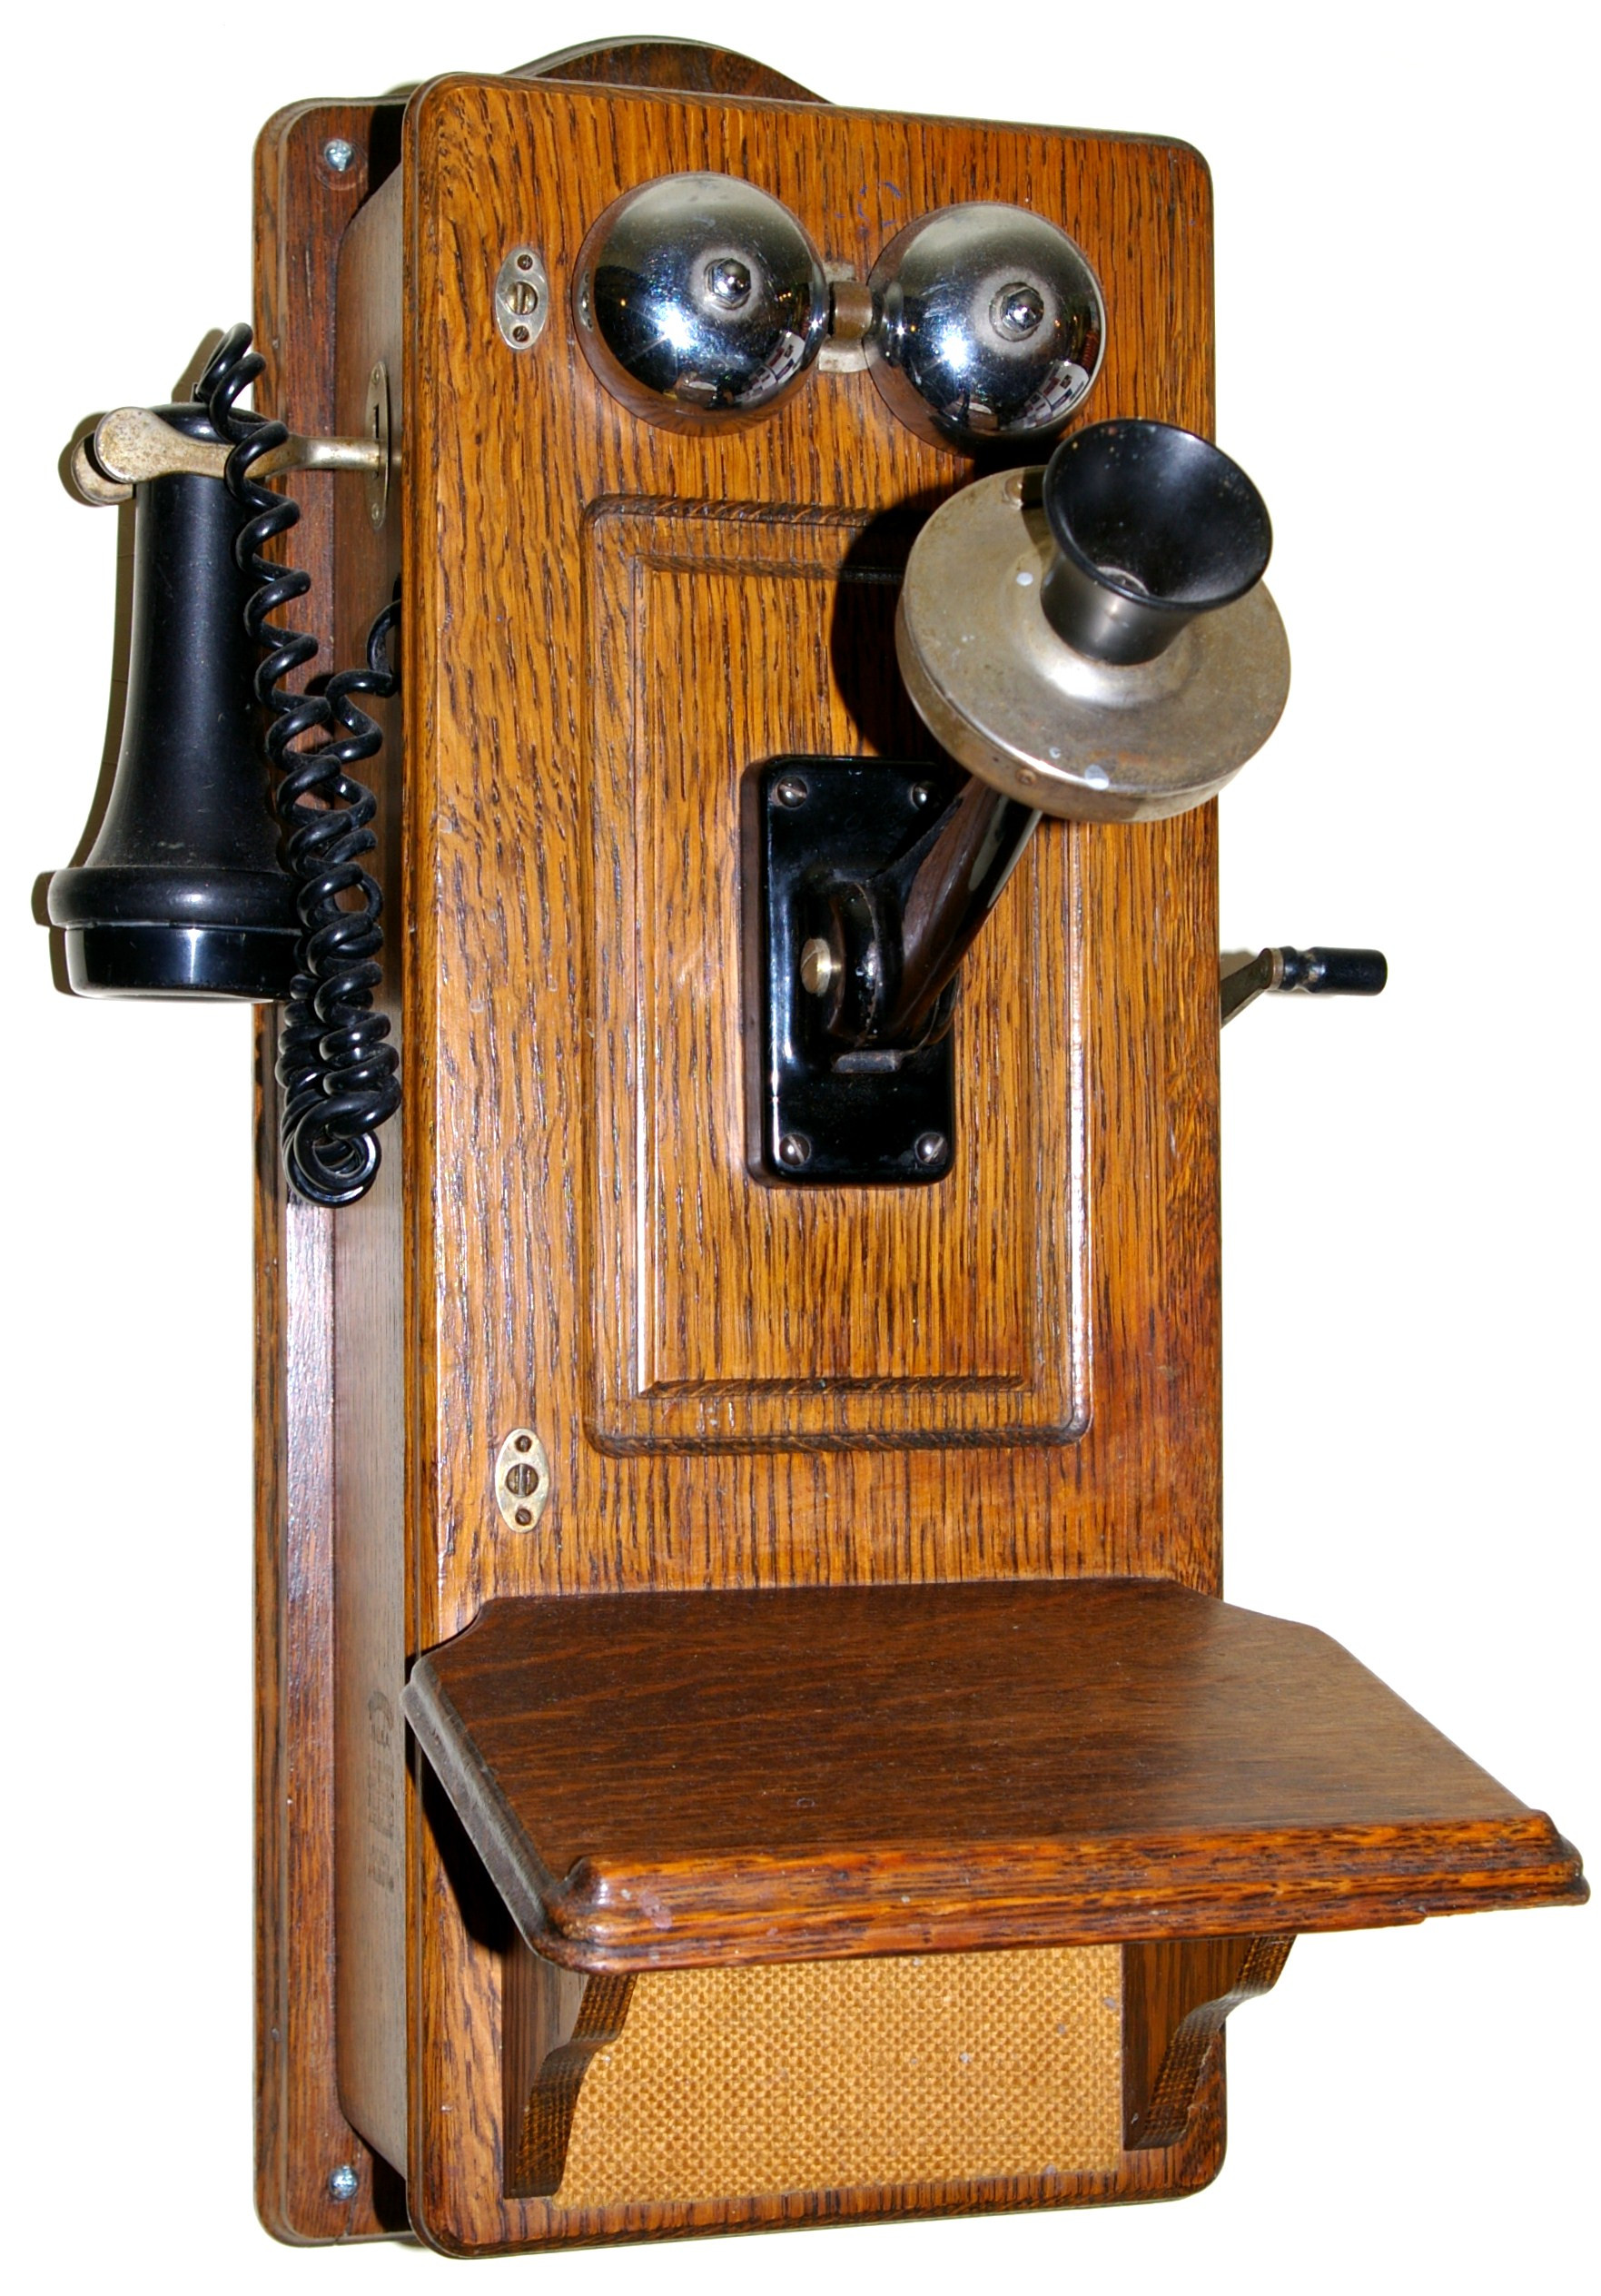 Lovely A Handmade Life – 1840 Farm Old Wall Telephone Of Marvelous 42 Models Old Wall Telephone